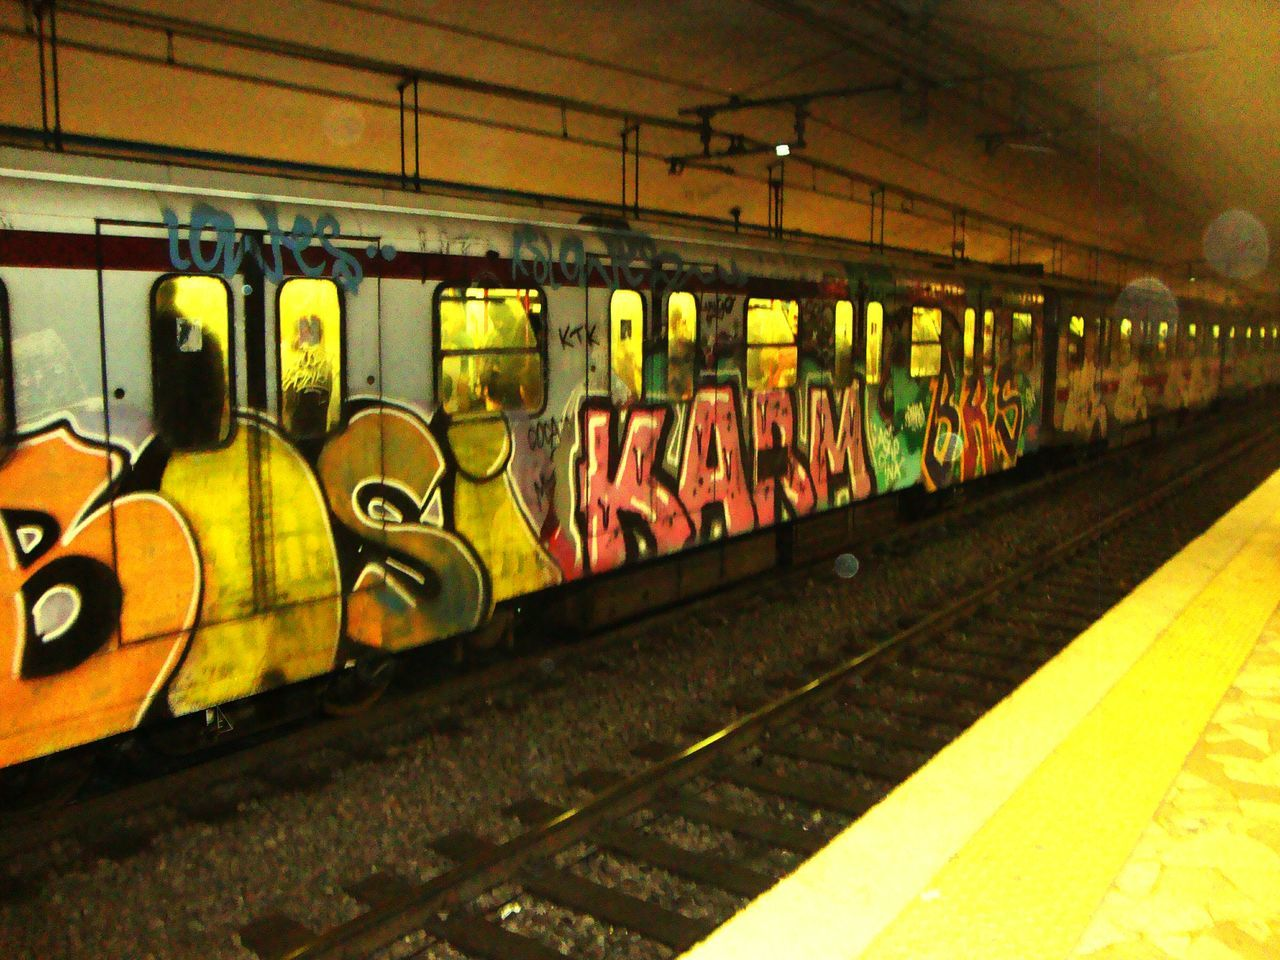 Rome Subway Subwayphotography Subway Station Graffiti Art Graffiti Roma Italia Italy Rome Italy Street Art Subway Art Viewofthecity Underground Underground Station  Europe Trip Italian Italy Photos Italy❤️ Arteurope Europe